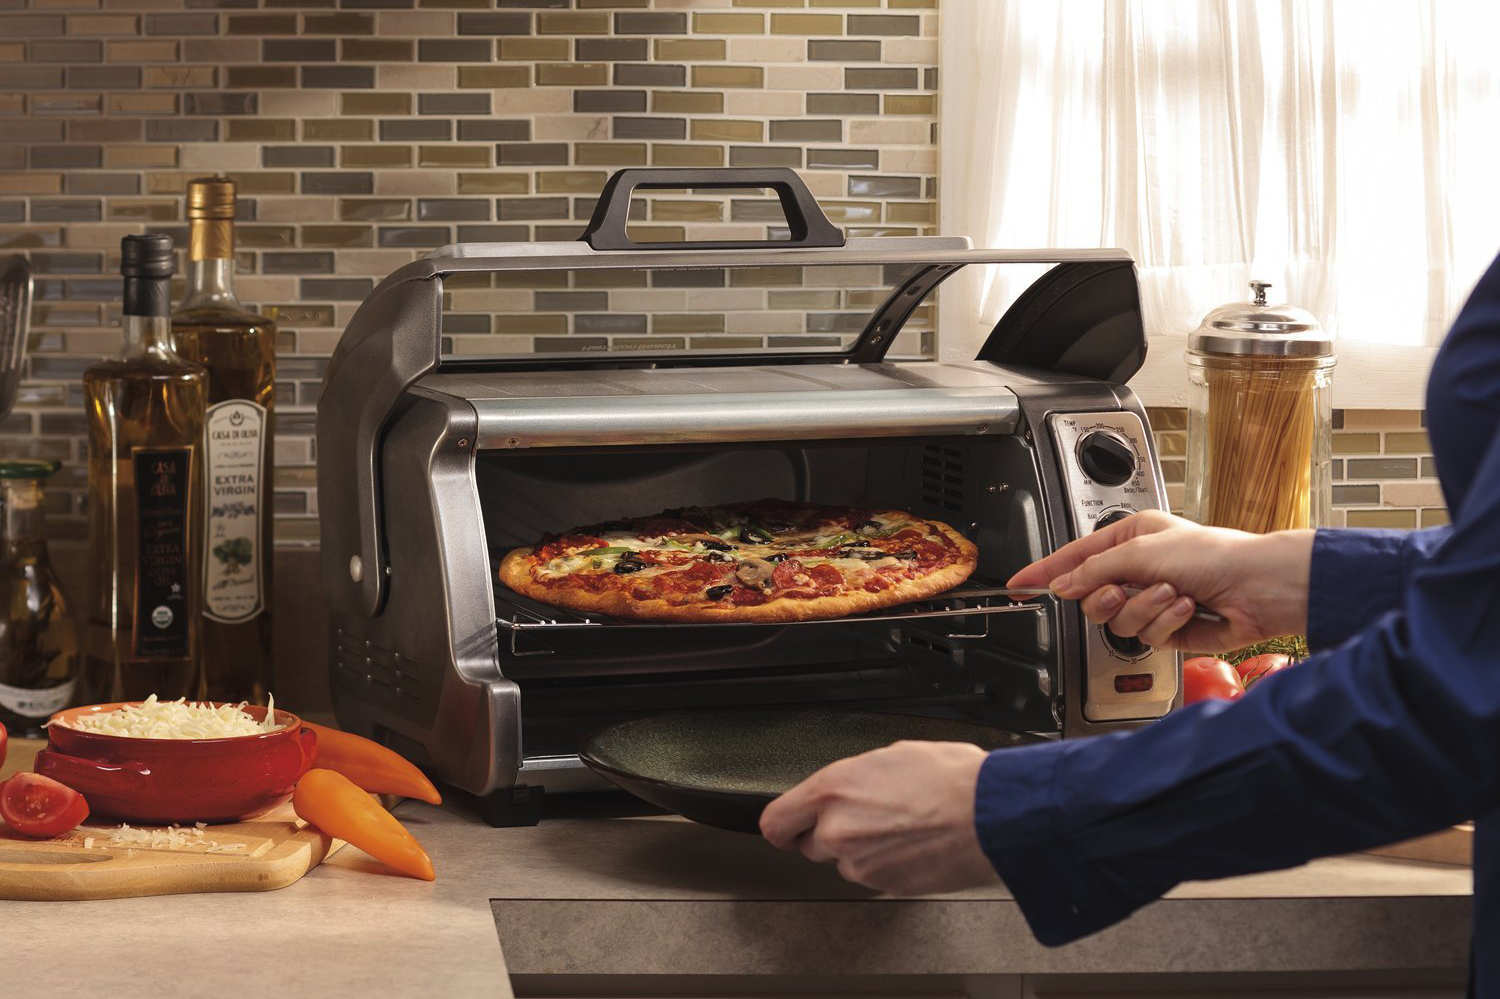 The 7 Best Toaster Ovens of 2016 | Digital Trends